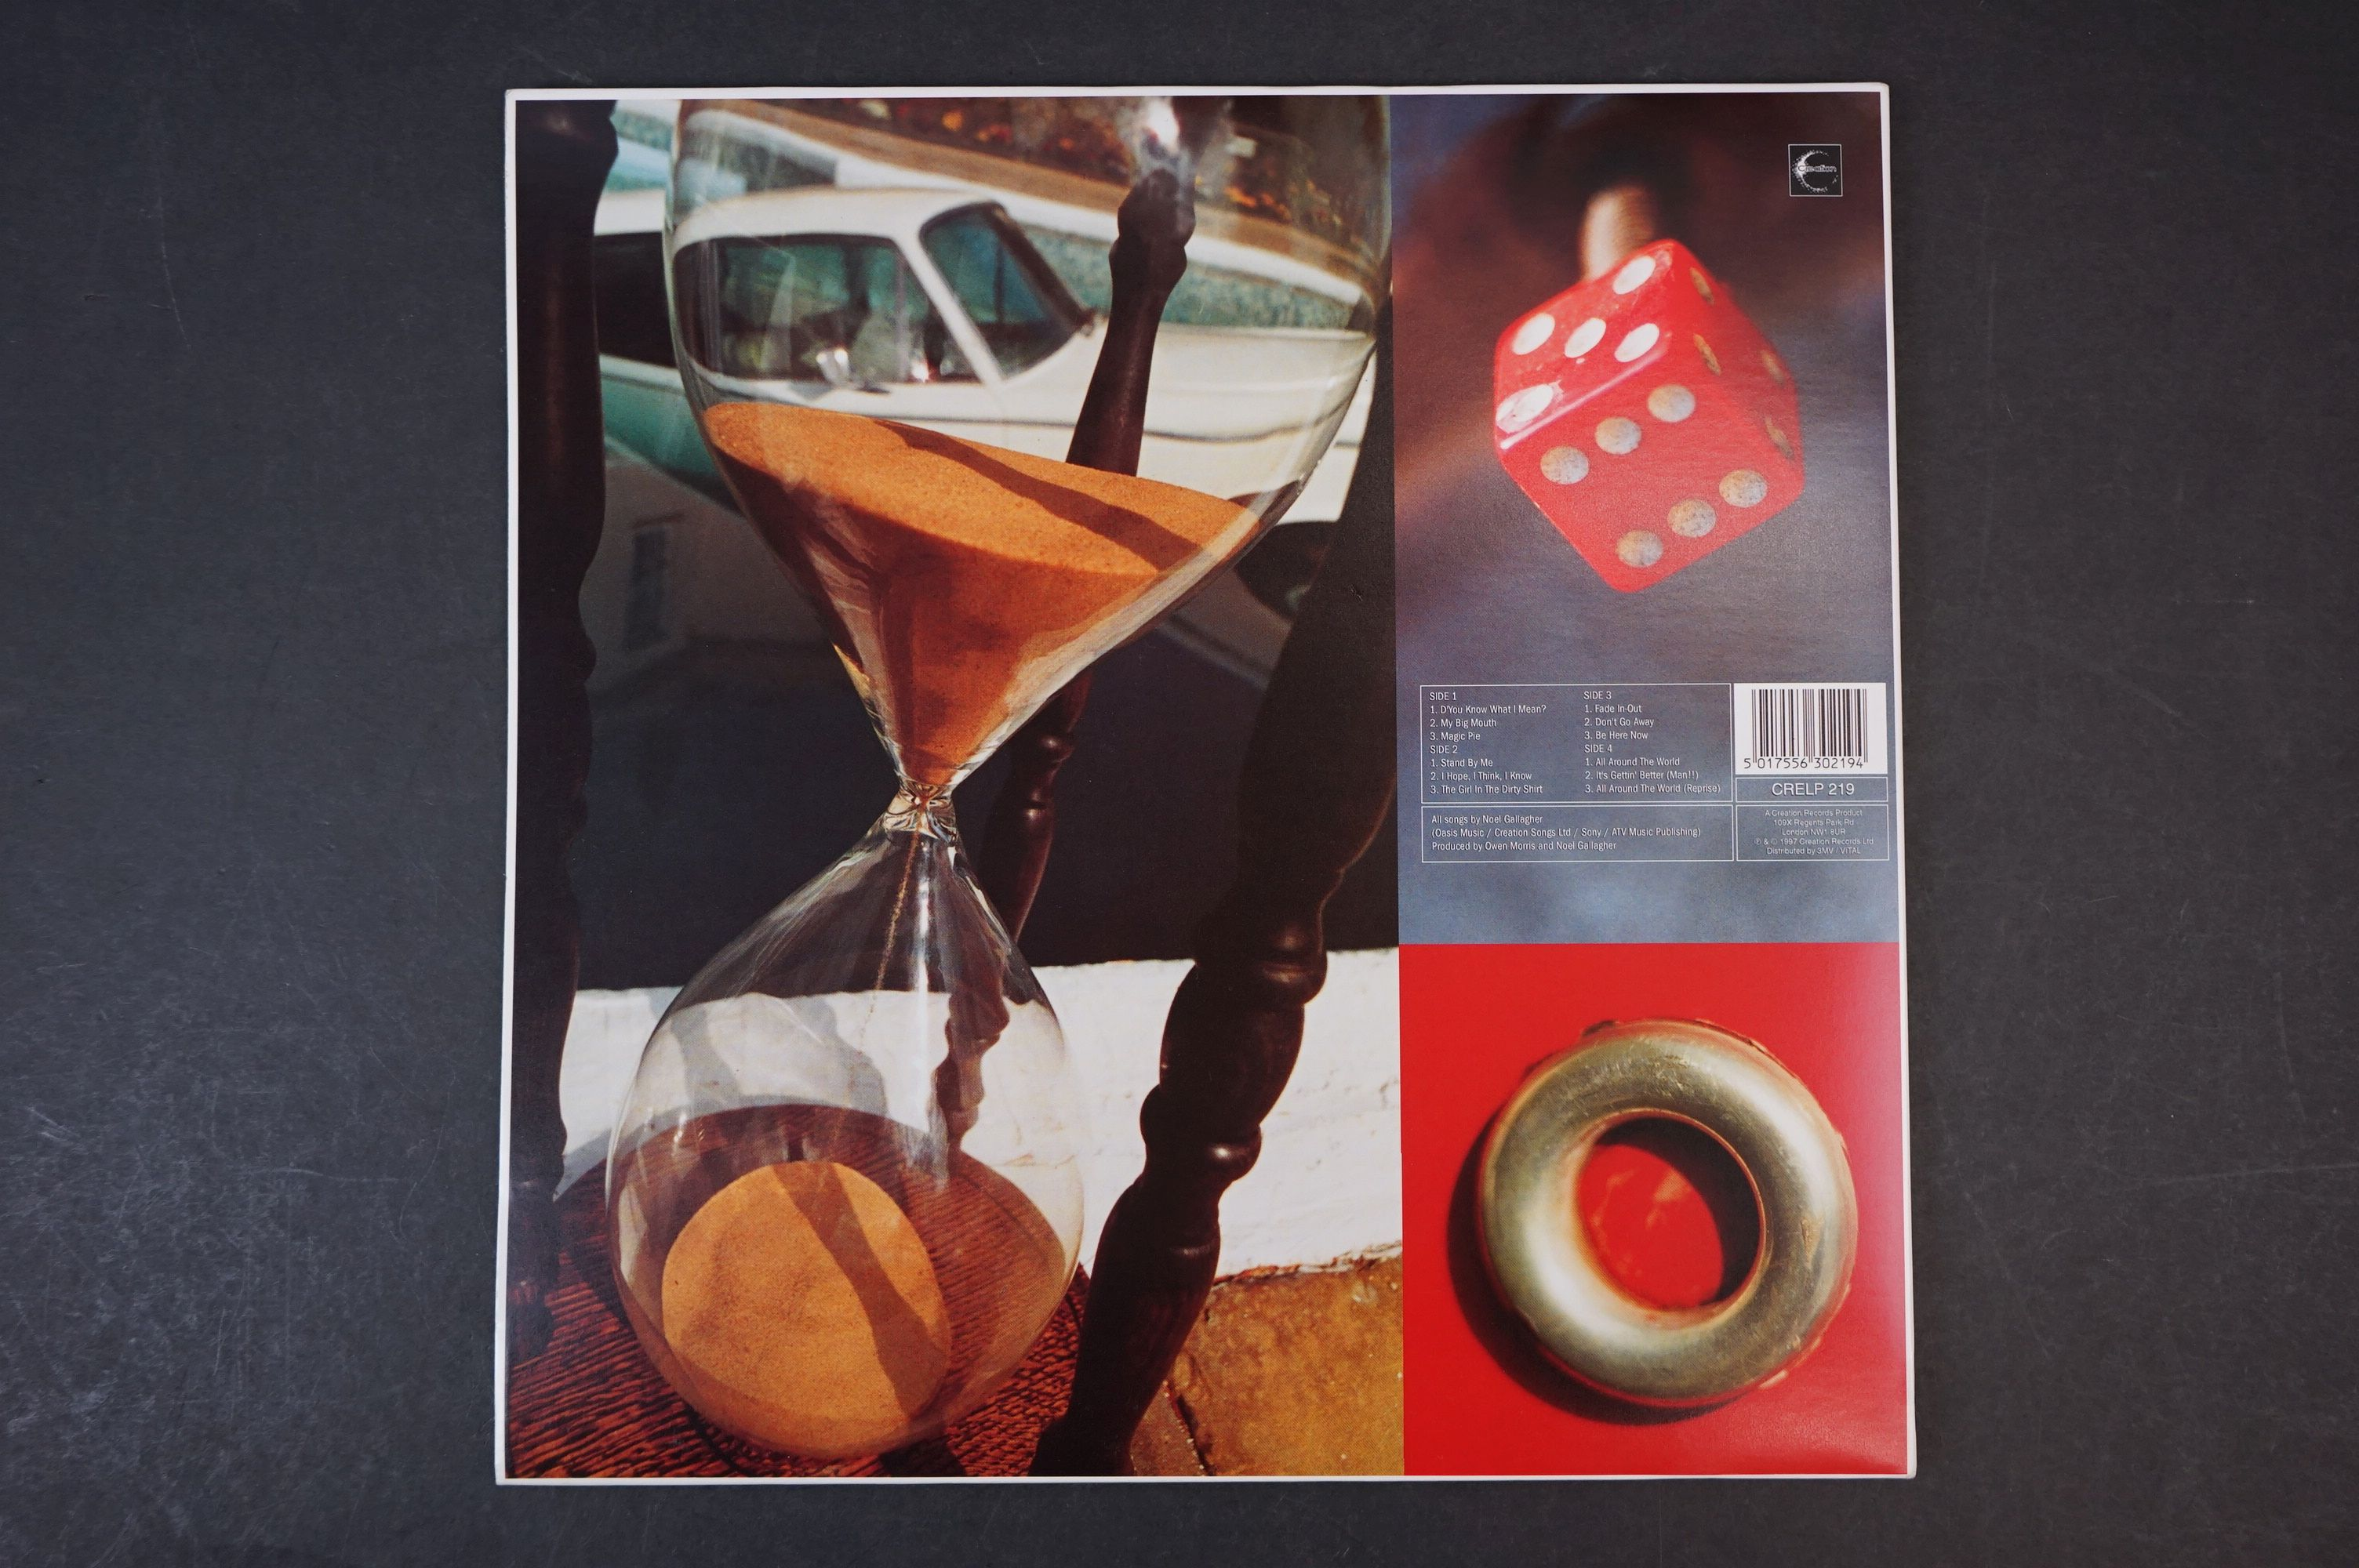 Vinyl - Oasis Be Here Now 2 LP on Creation CRELP219, sleeve ex, vinyl vg+ with a couple of marks - Image 10 of 10